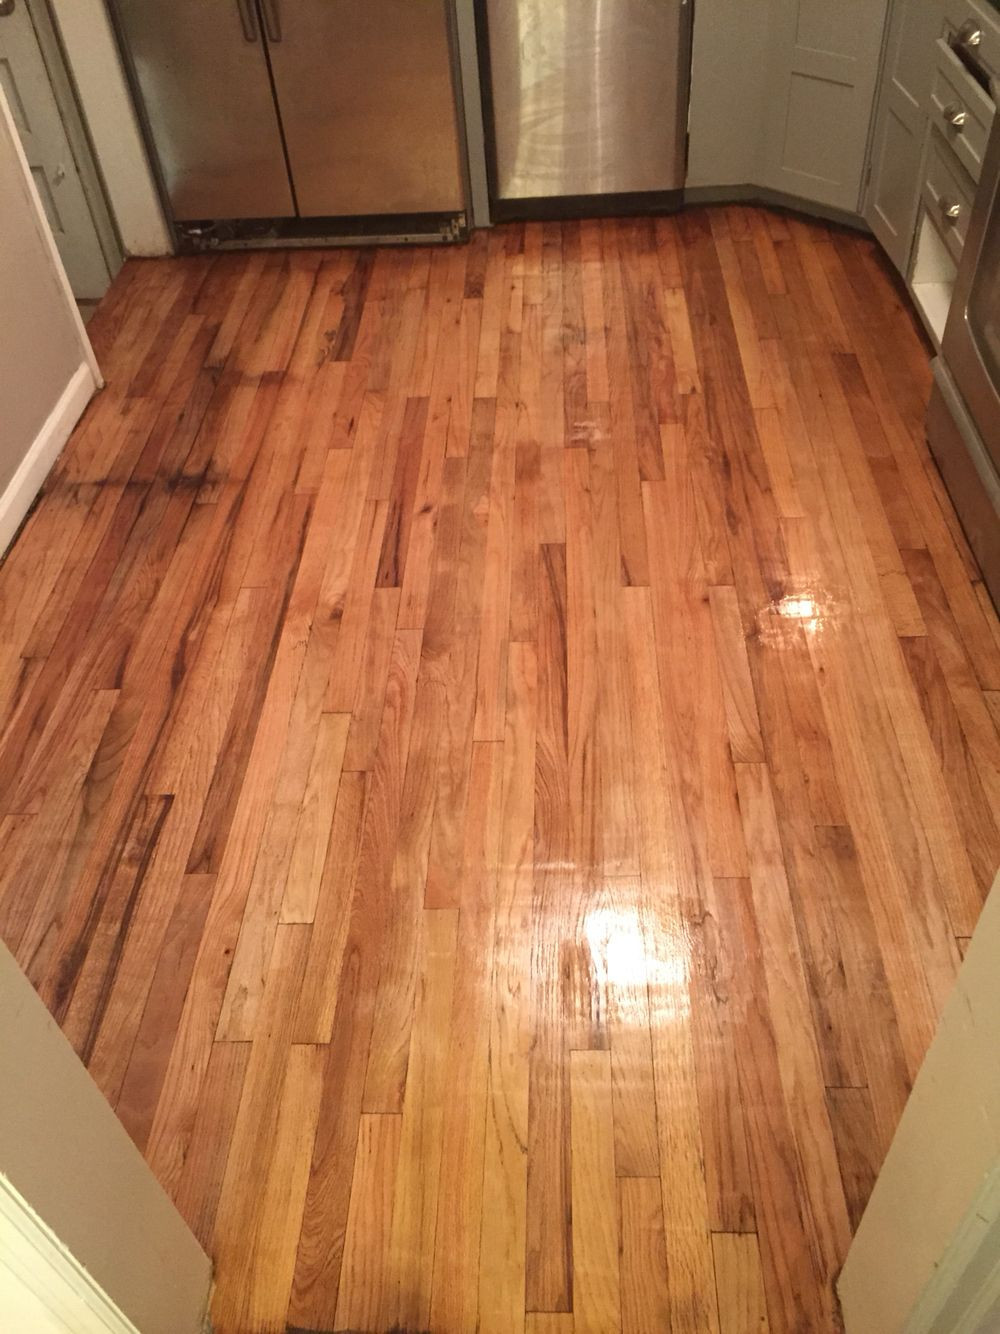 resurfacing hardwood floors without sanding of diy hardwood floor refinishing refinished red oak hard wood floors with regard to diy hardwood floor refinishing refinished red oak hard wood floors found under vinyl flooring in